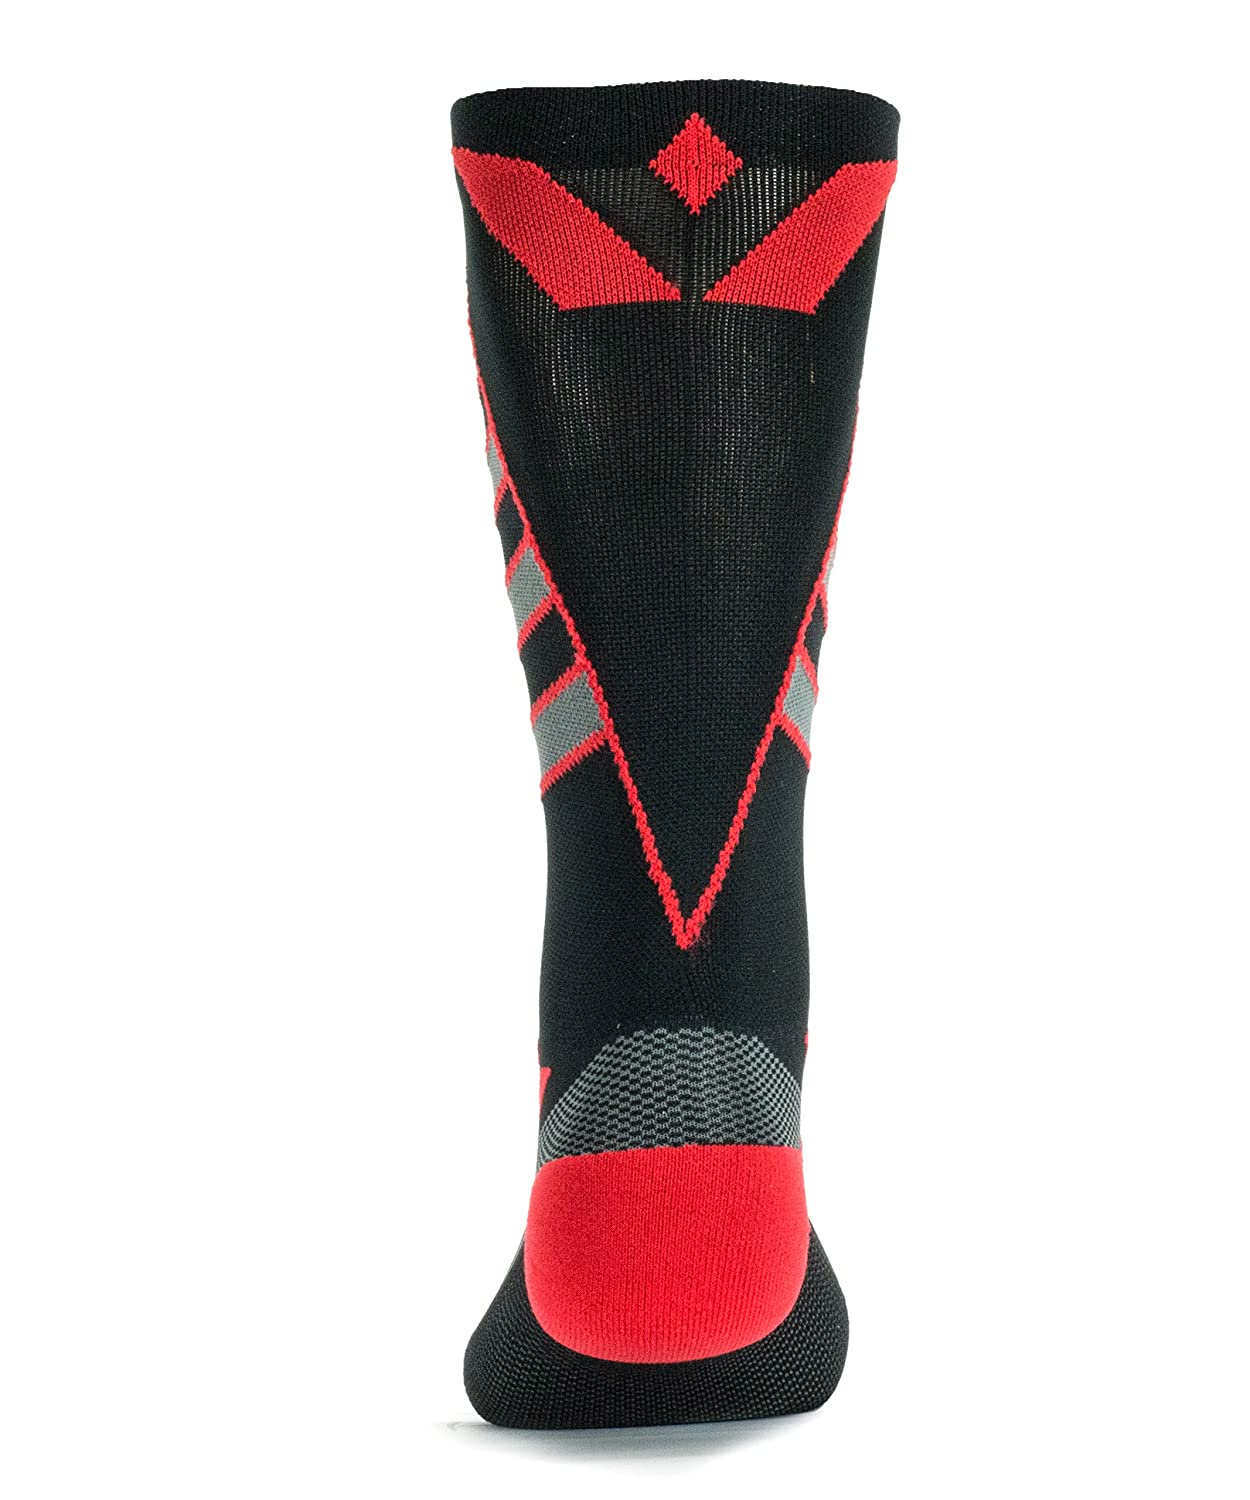 Swiftwick Seamless Toe Performance Compression Socks Vision Eight Team Soft Socks for Cycling